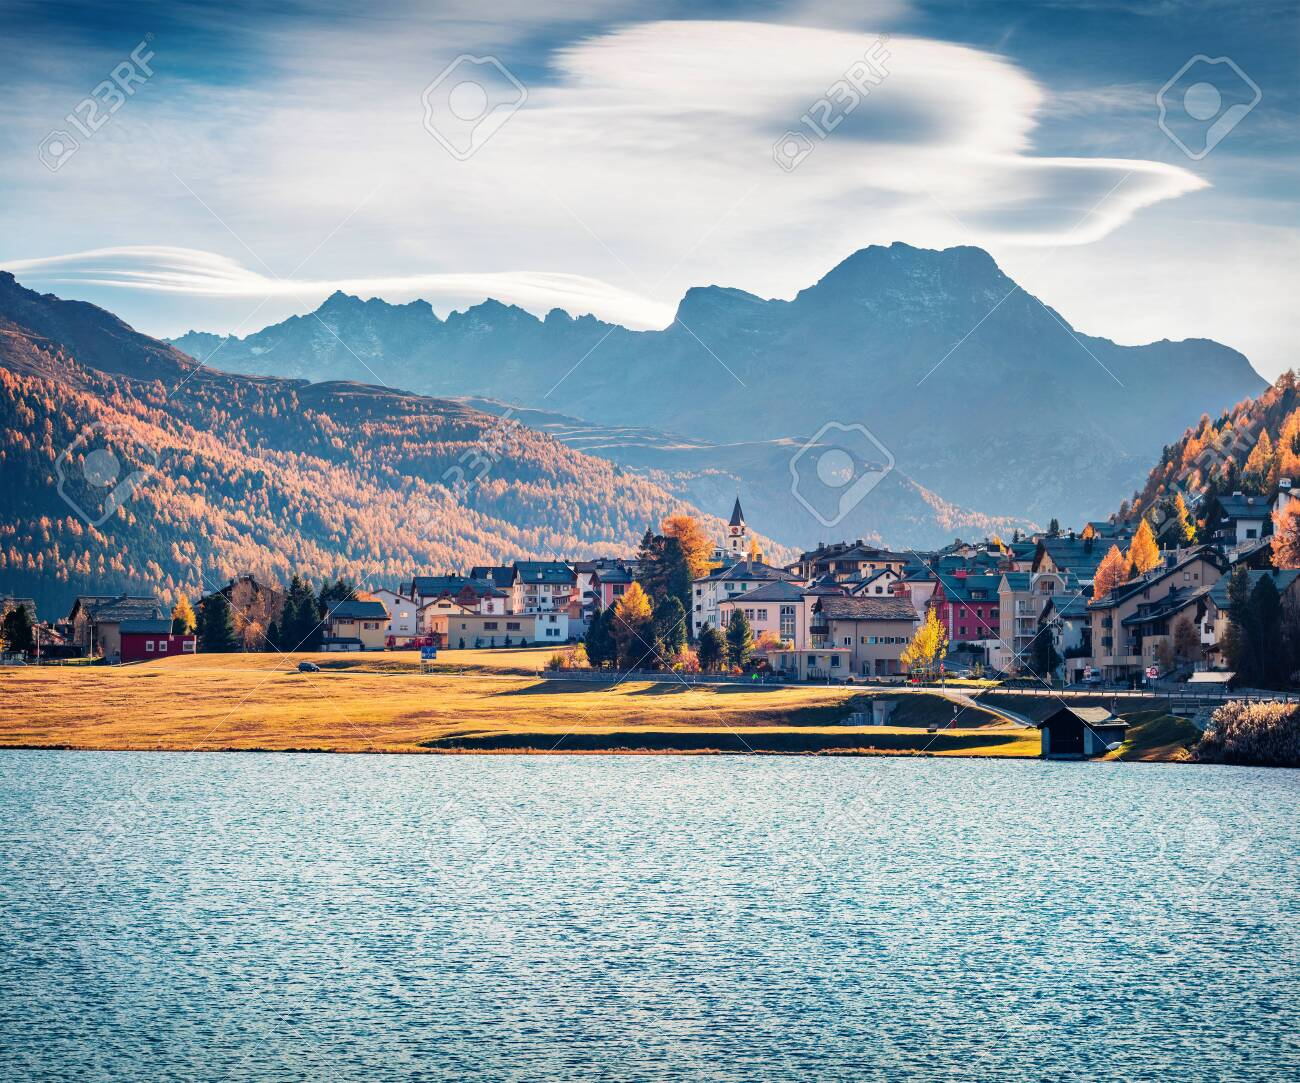 Stunning autumn cityscape of Silvaplana town. Splendid morning view of Lake Champfer, Upper Engadine in the Swiss canton of the Grisons, Switzerland, Europe. Traveling concept background. - 140764661